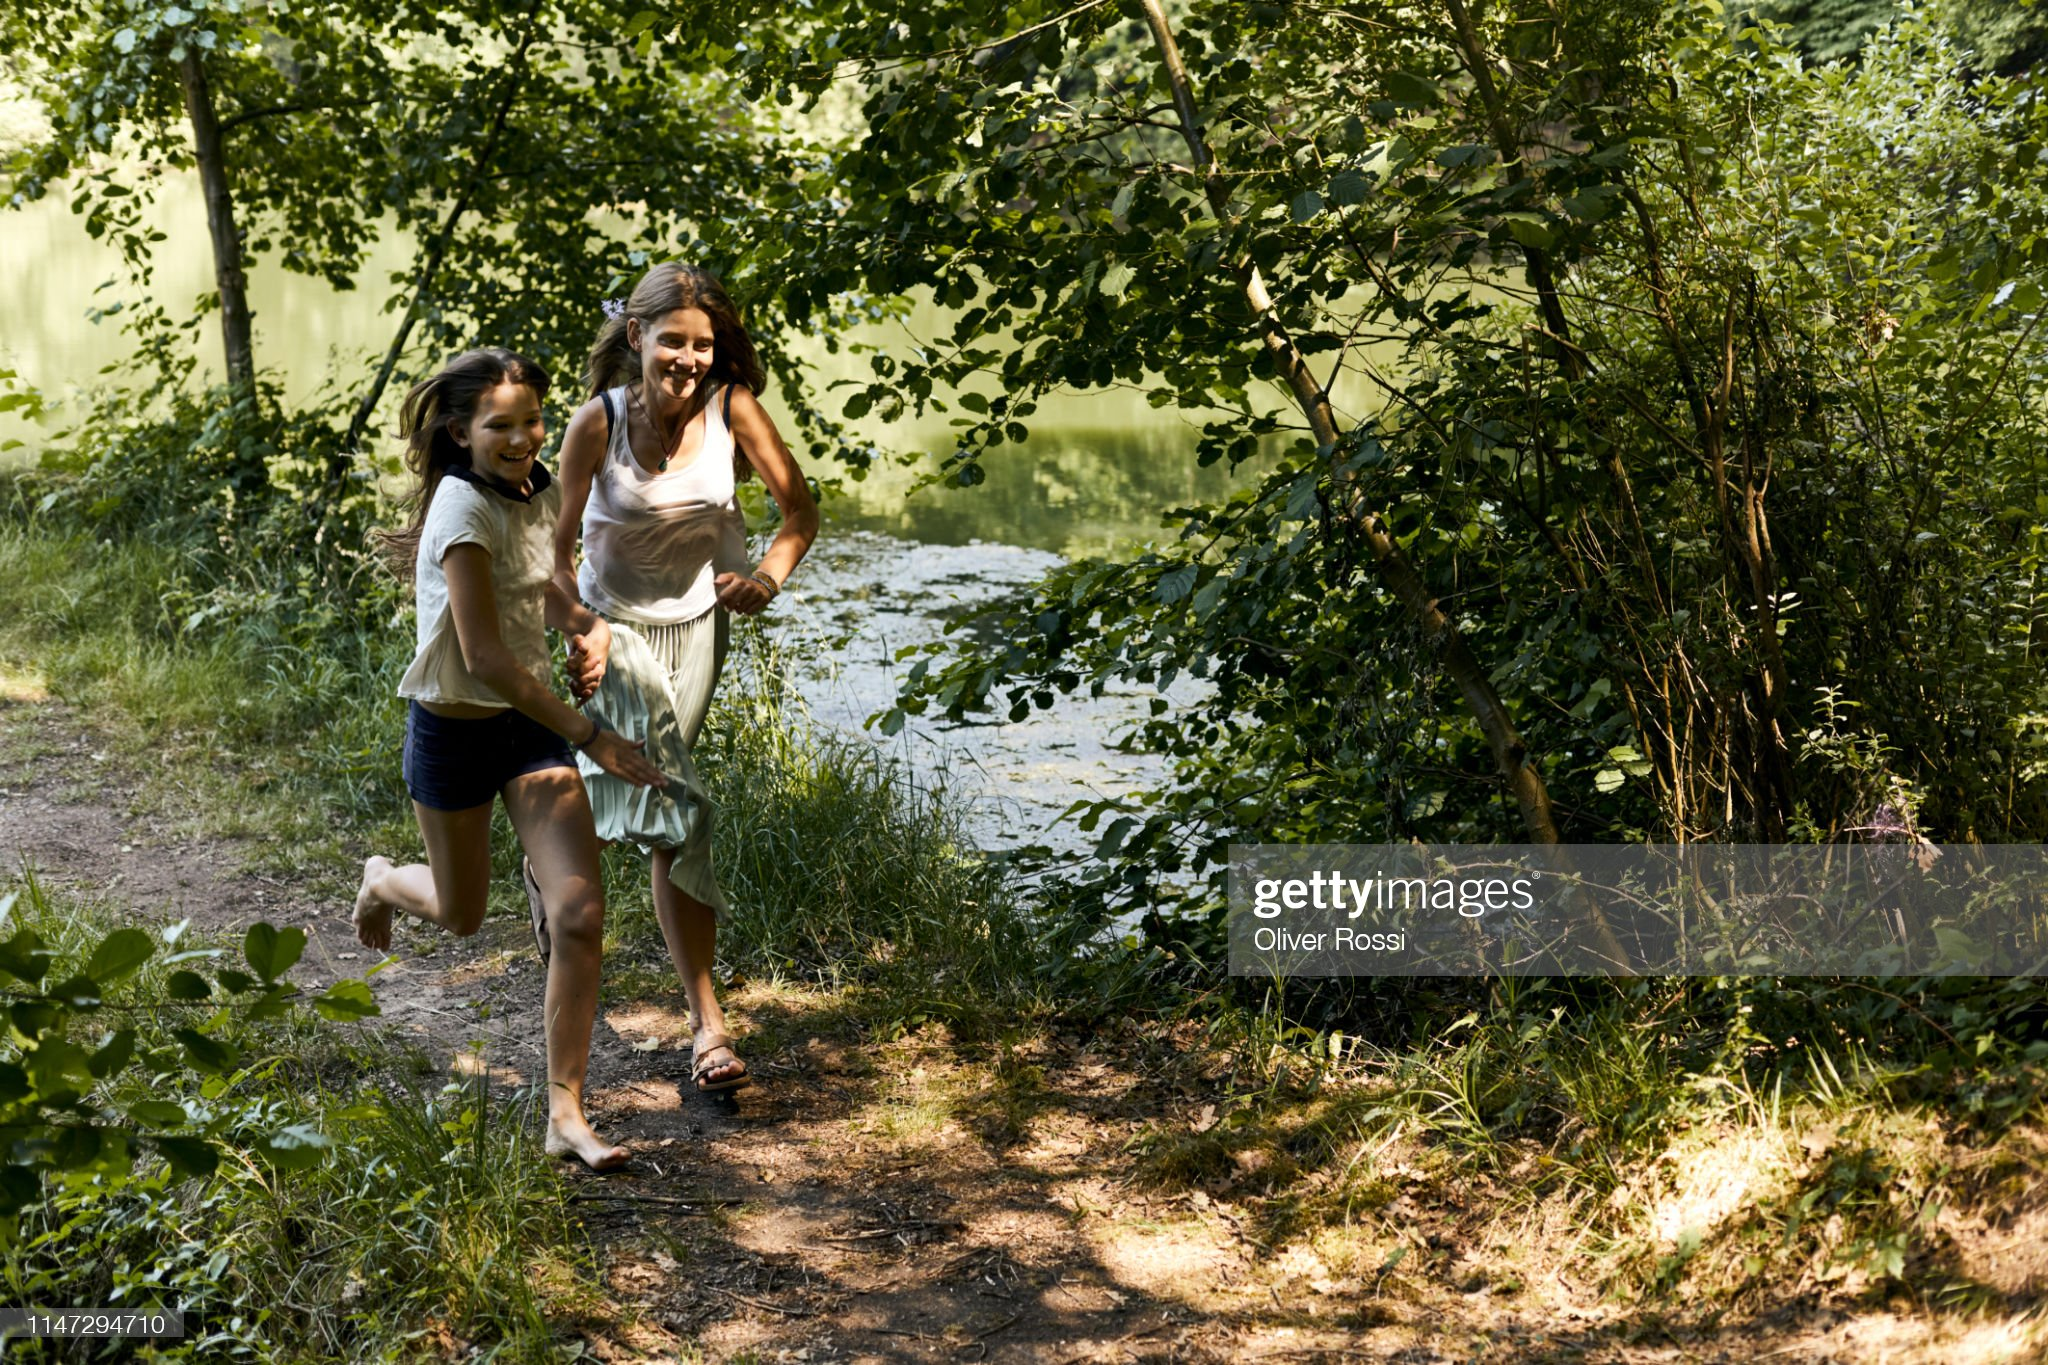 https://media.gettyimages.com/photos/happy-mother-and-daughter-running-on-path-at-a-pond-picture-id1147294710?s=2048x2048